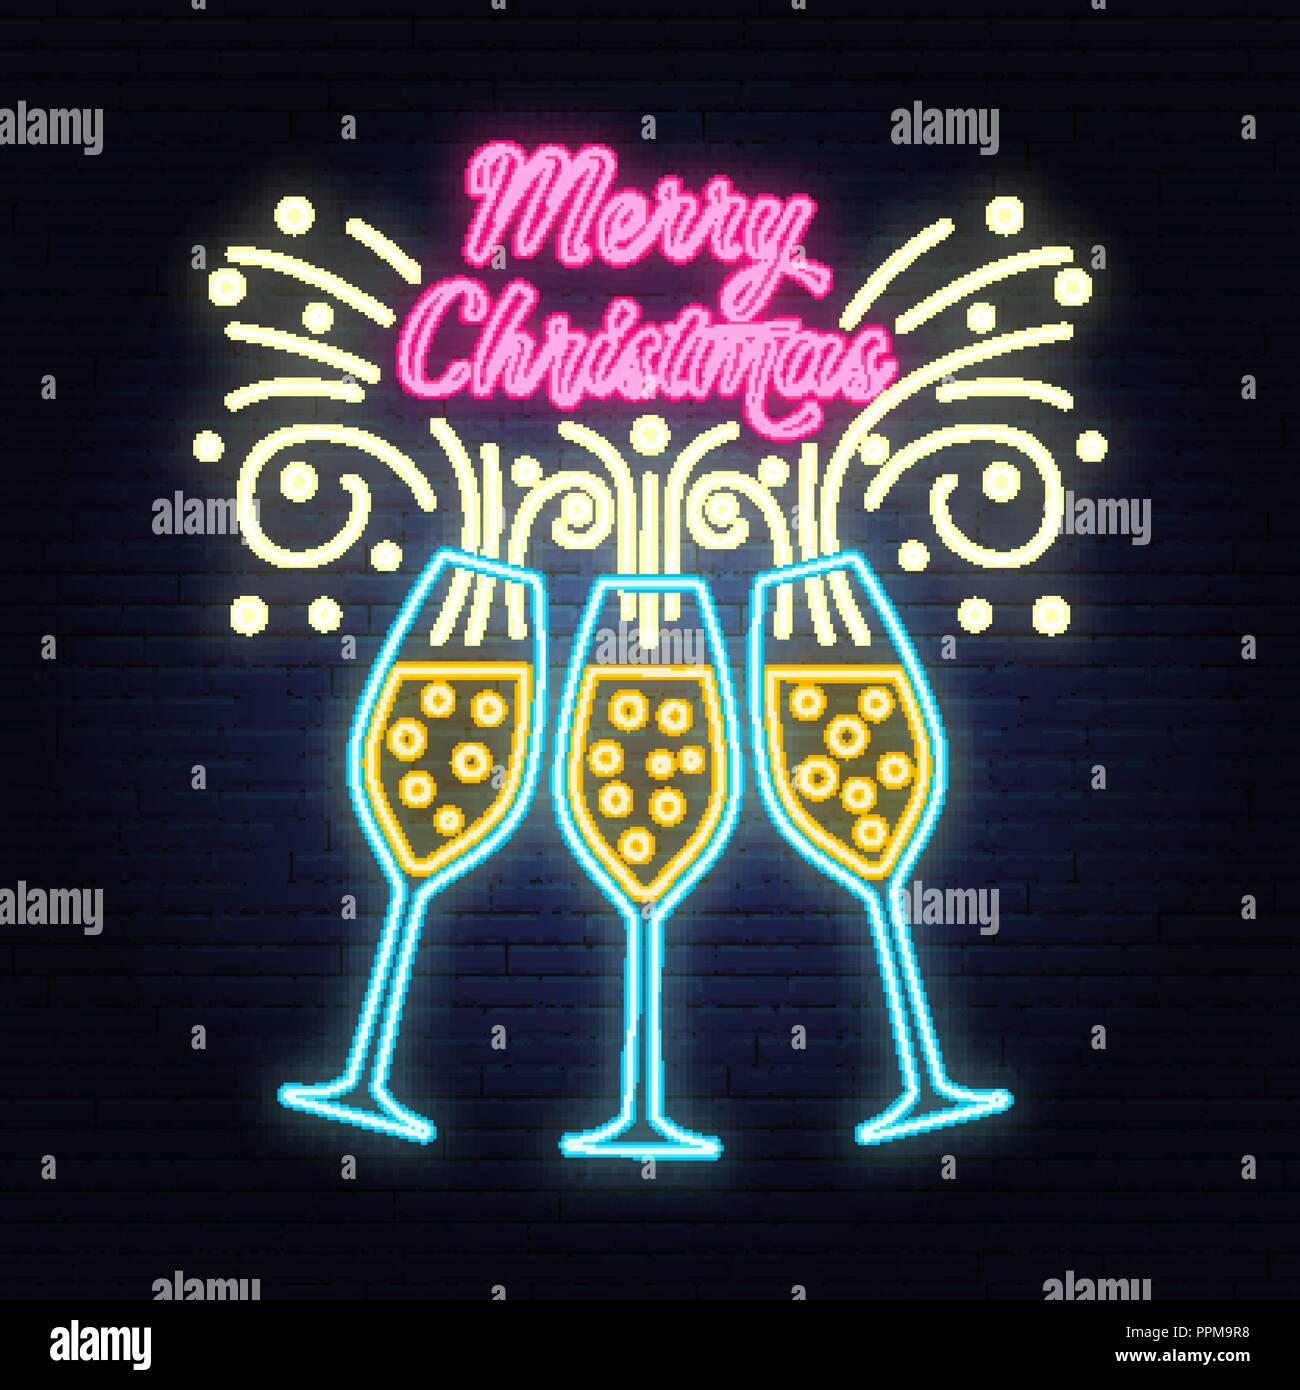 merry christmas banner with champagne glasses neon sign vector